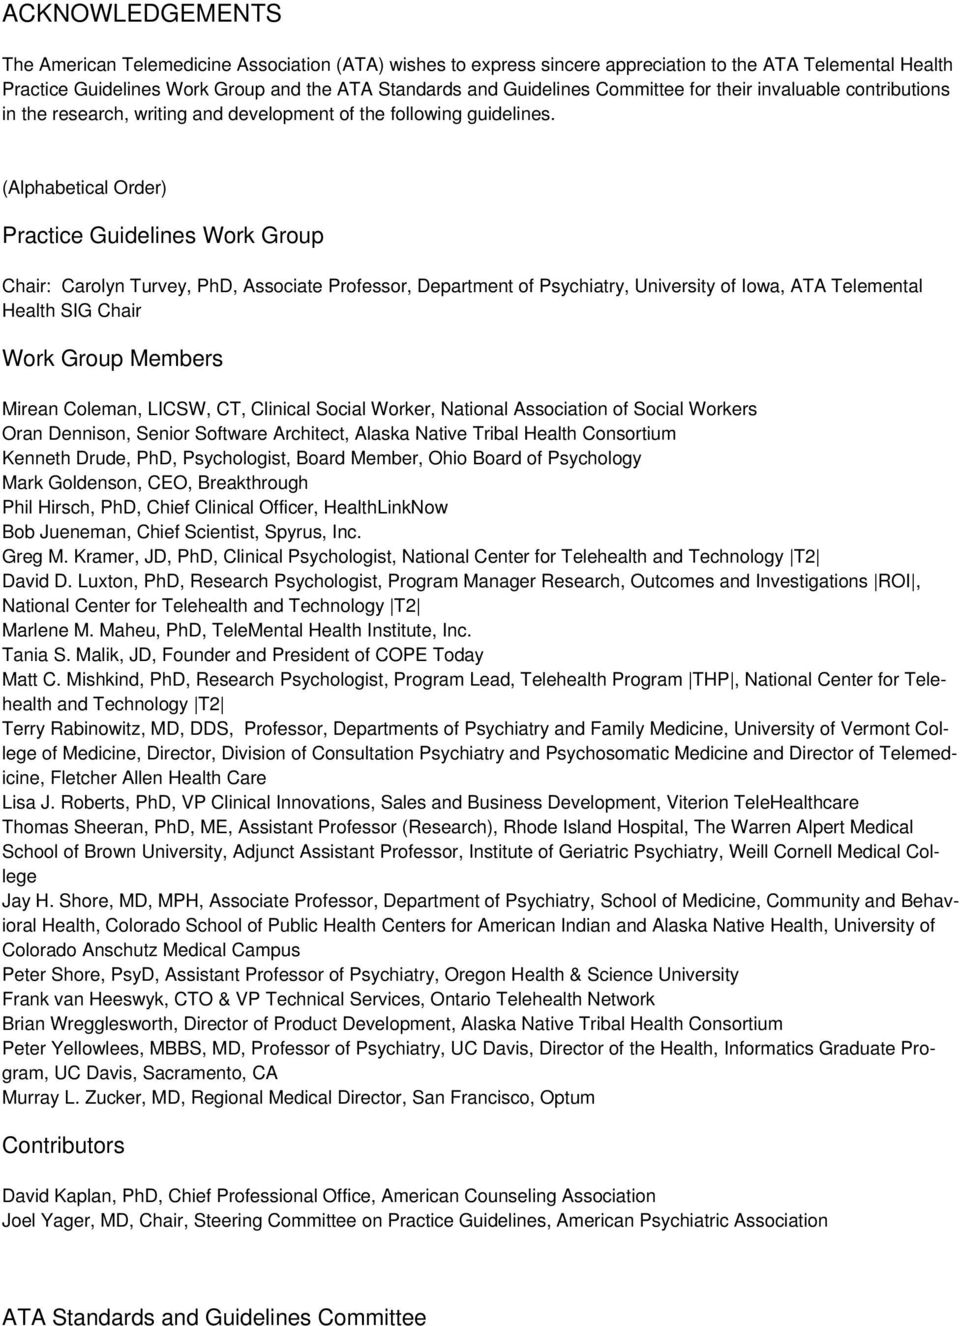 (Alphabetical Order) Practice Guidelines Work Group Chair: Carolyn Turvey, PhD, Associate Professor, Department of Psychiatry, University of Iowa, ATA Telemental Health SIG Chair Work Group Members